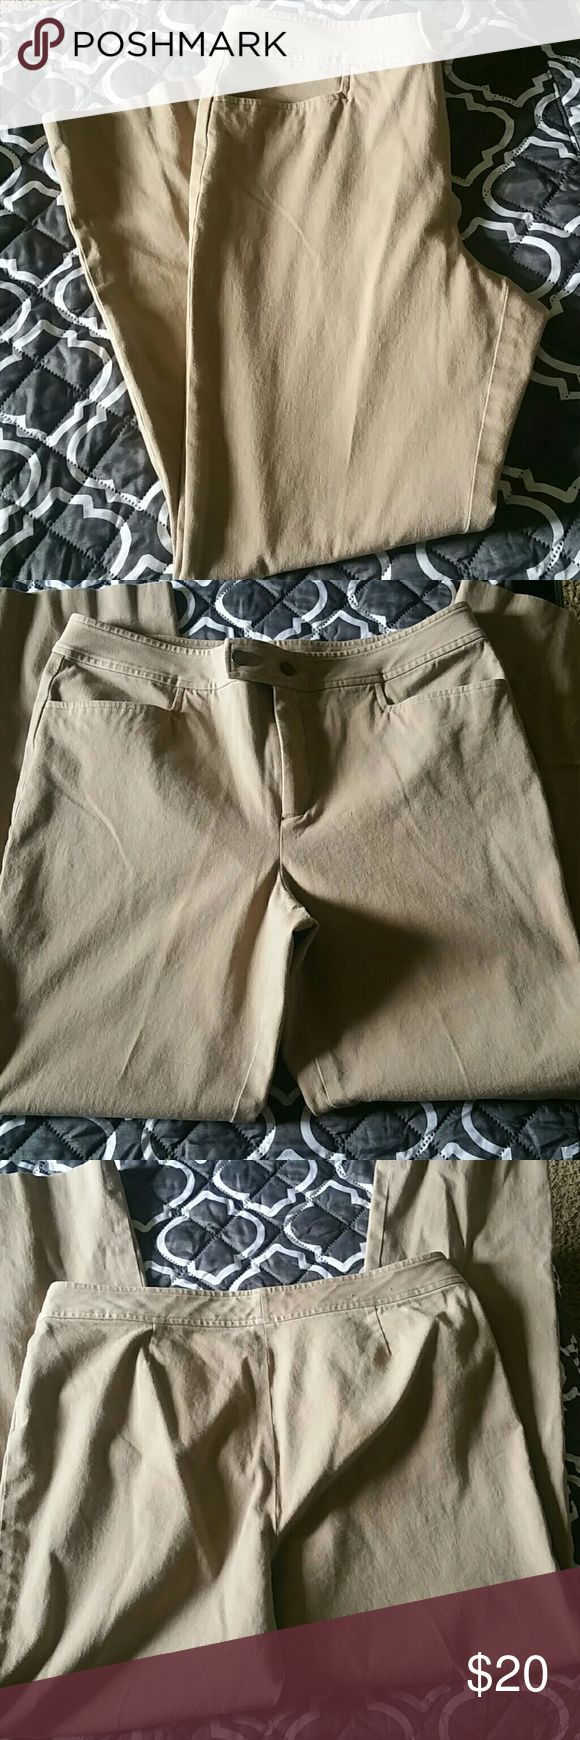 Chaps Kaki Capri Womens size 12. These pants are practically brand new. They are too small for me. 27 inch inseam. Make me a offer! Chaps Pants Capris